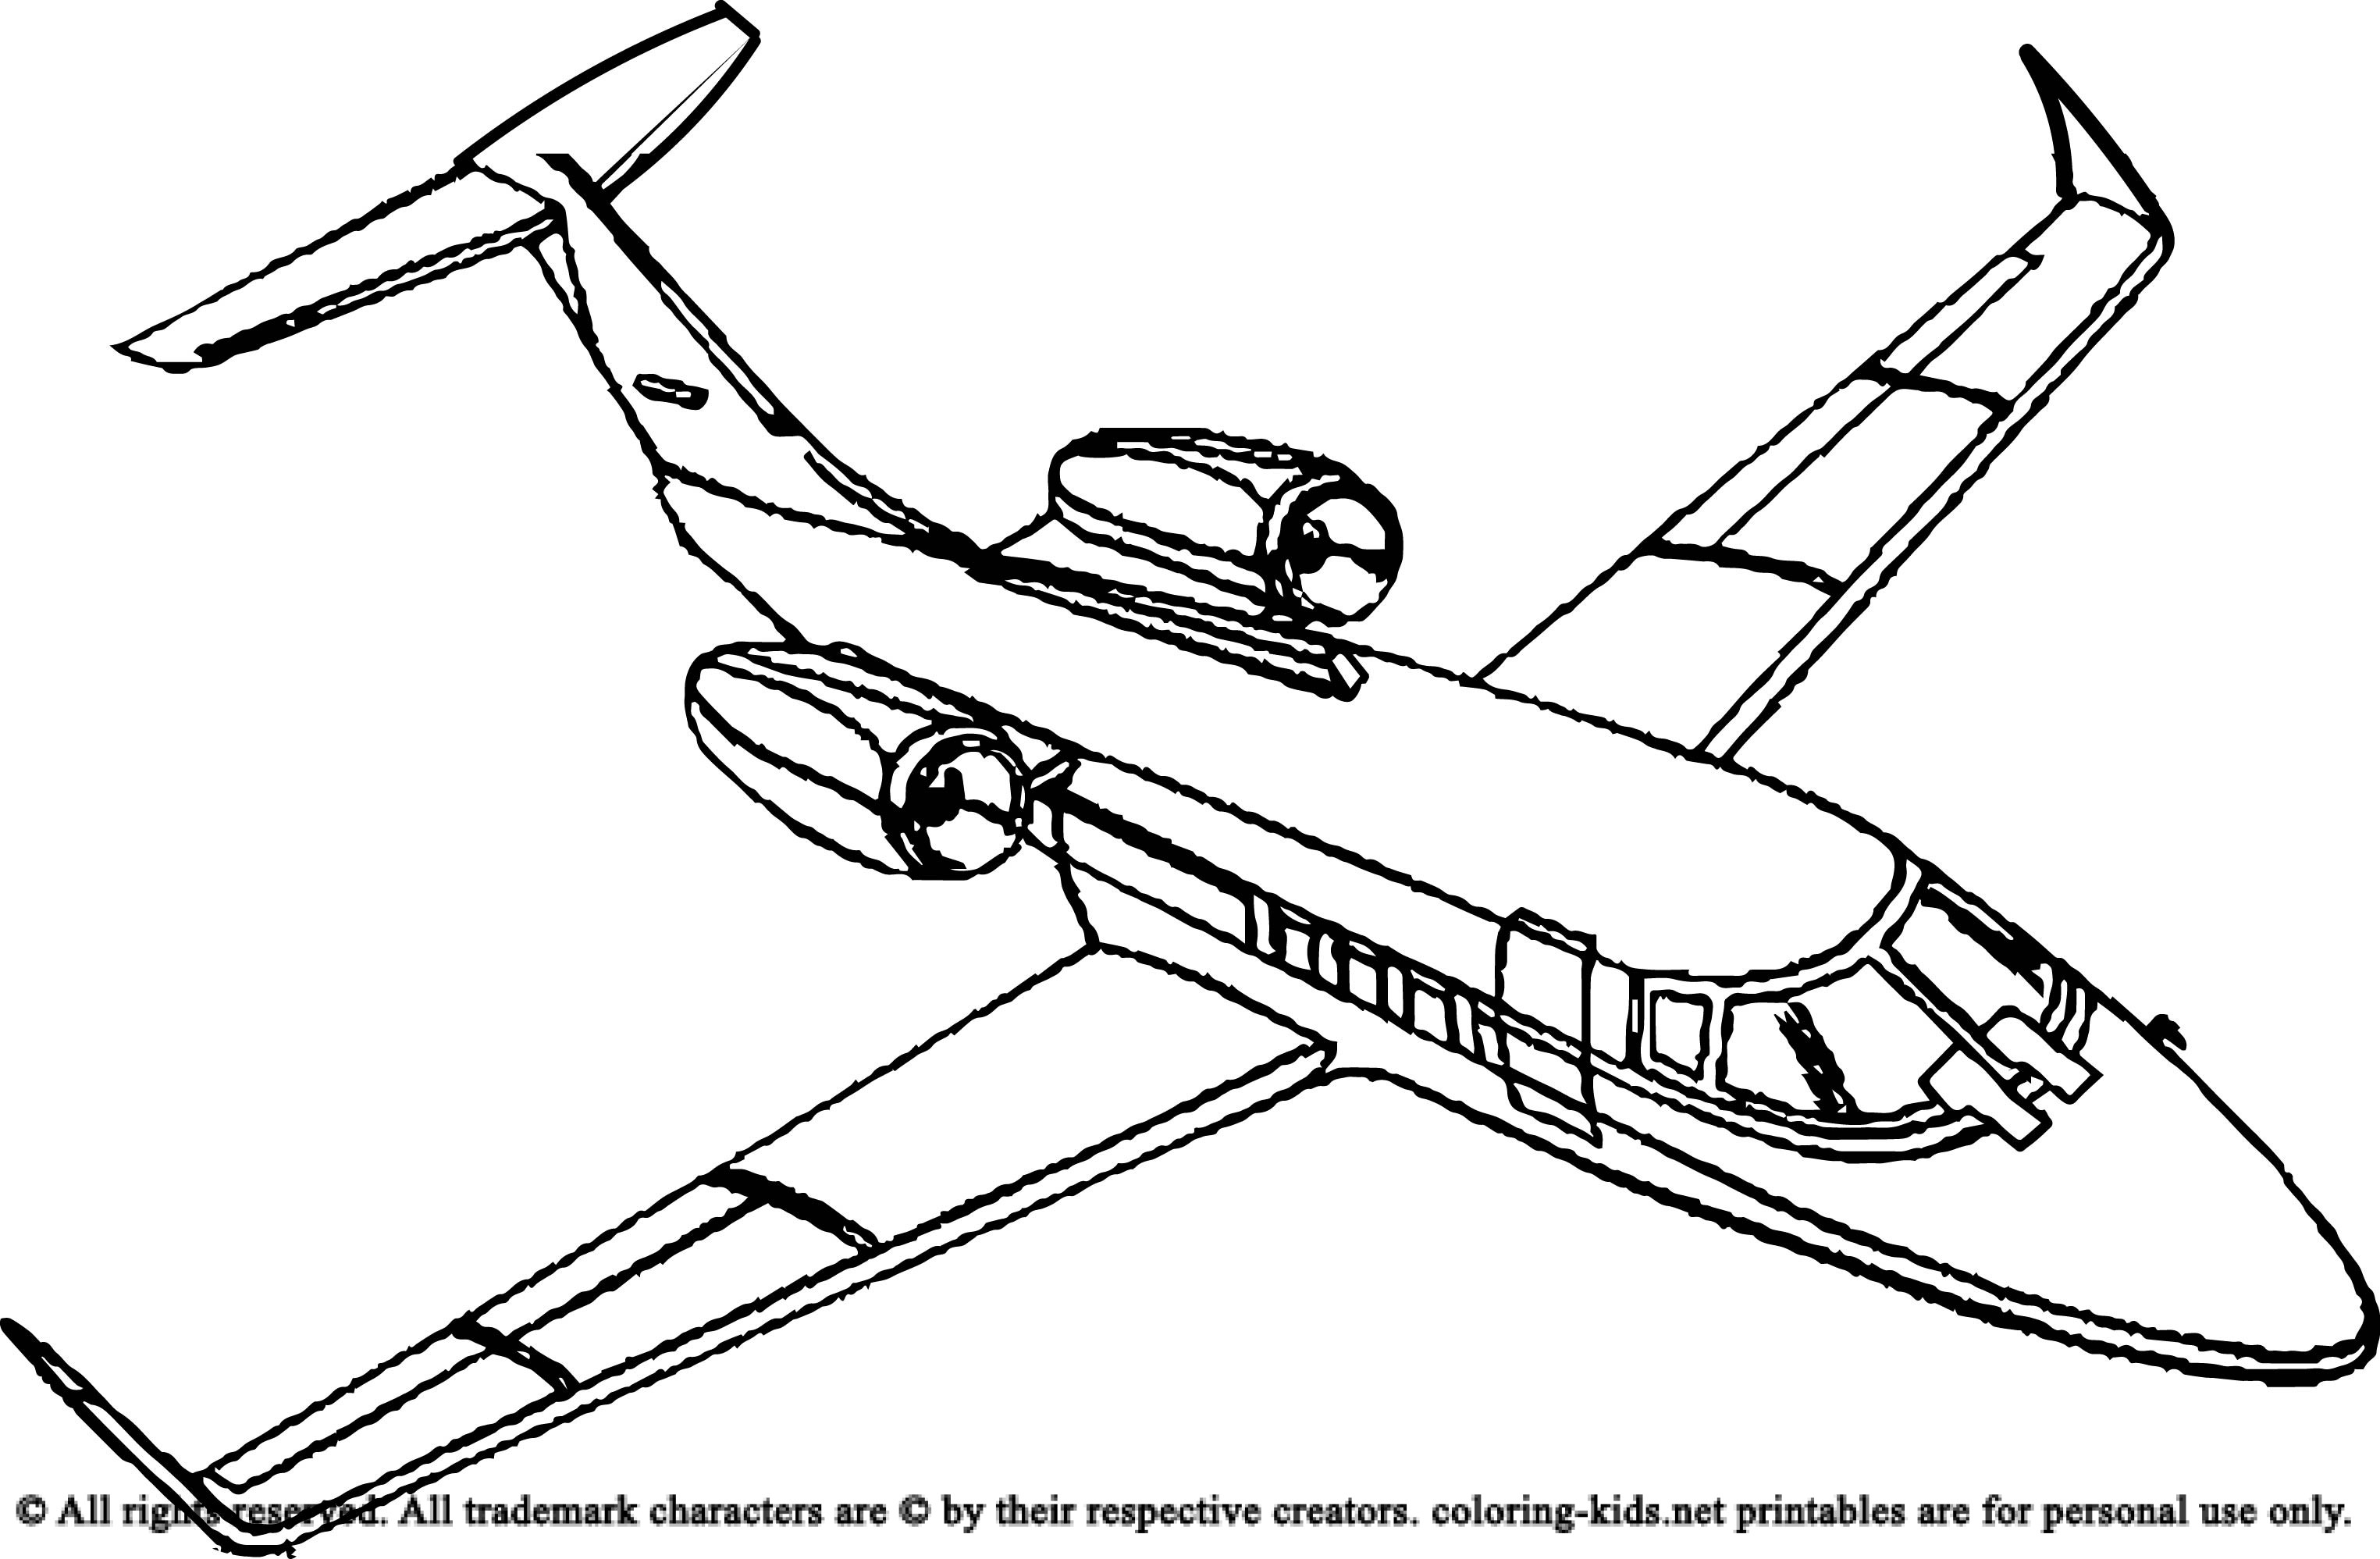 3049x1997 Lego Jet Coloring Pages Airplane To Print Com